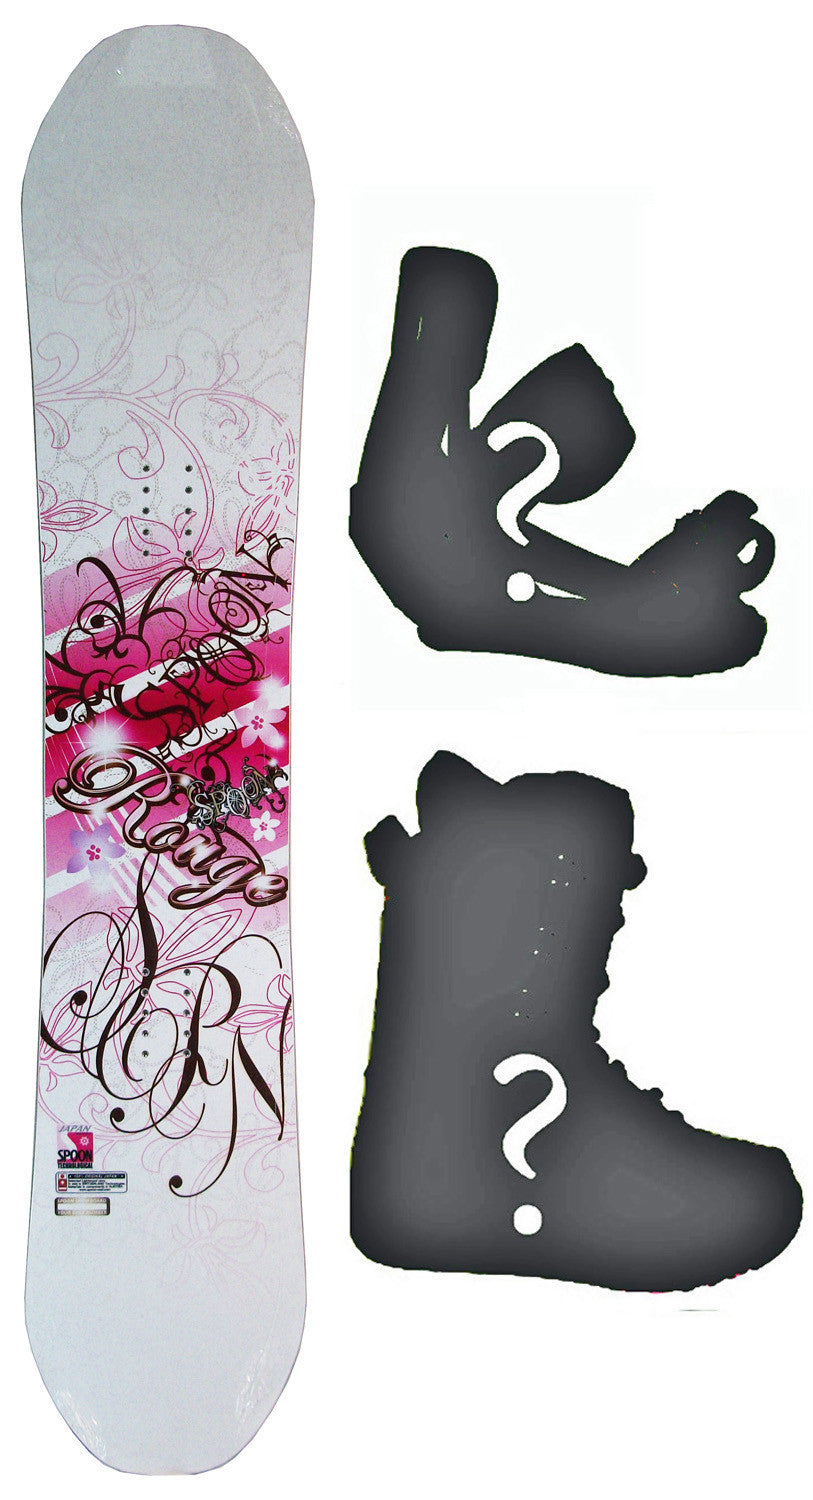 139cm  Spoon Rouge White Flat Rocker Snowboard, Build a Package with Boots and Bindings